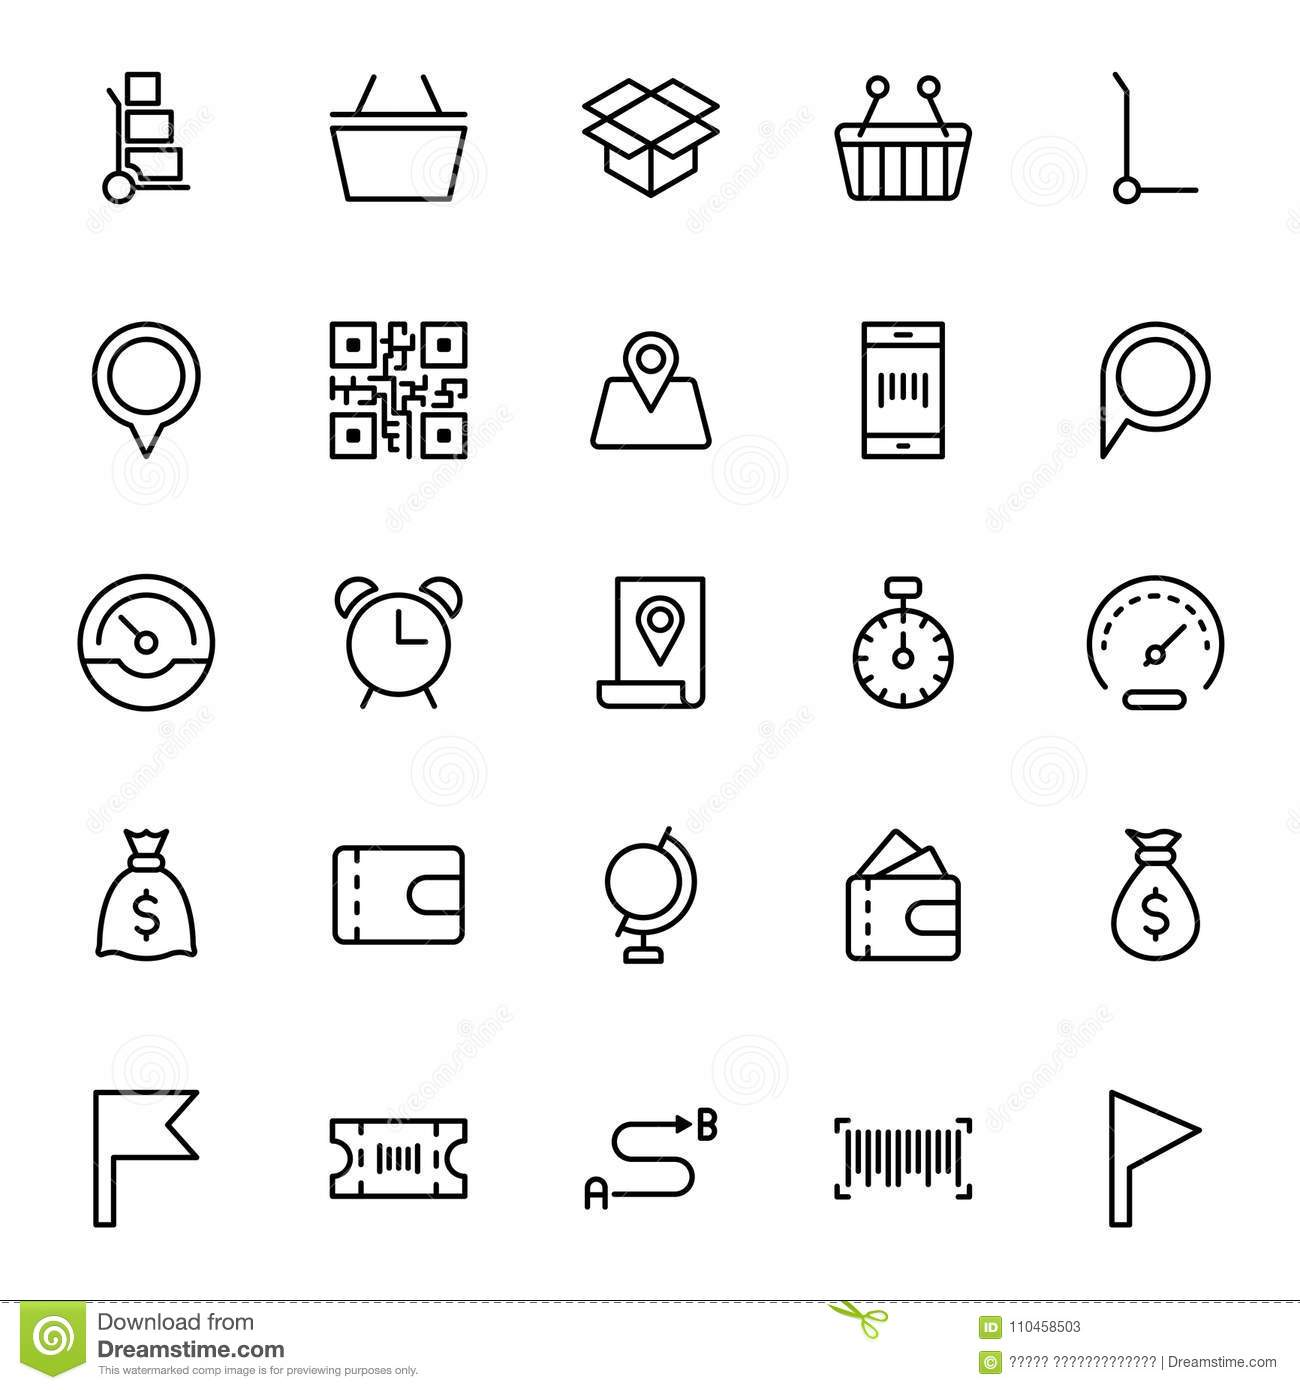 Online Market Flat Icon Stock Vector Illustration Of Link 110458503